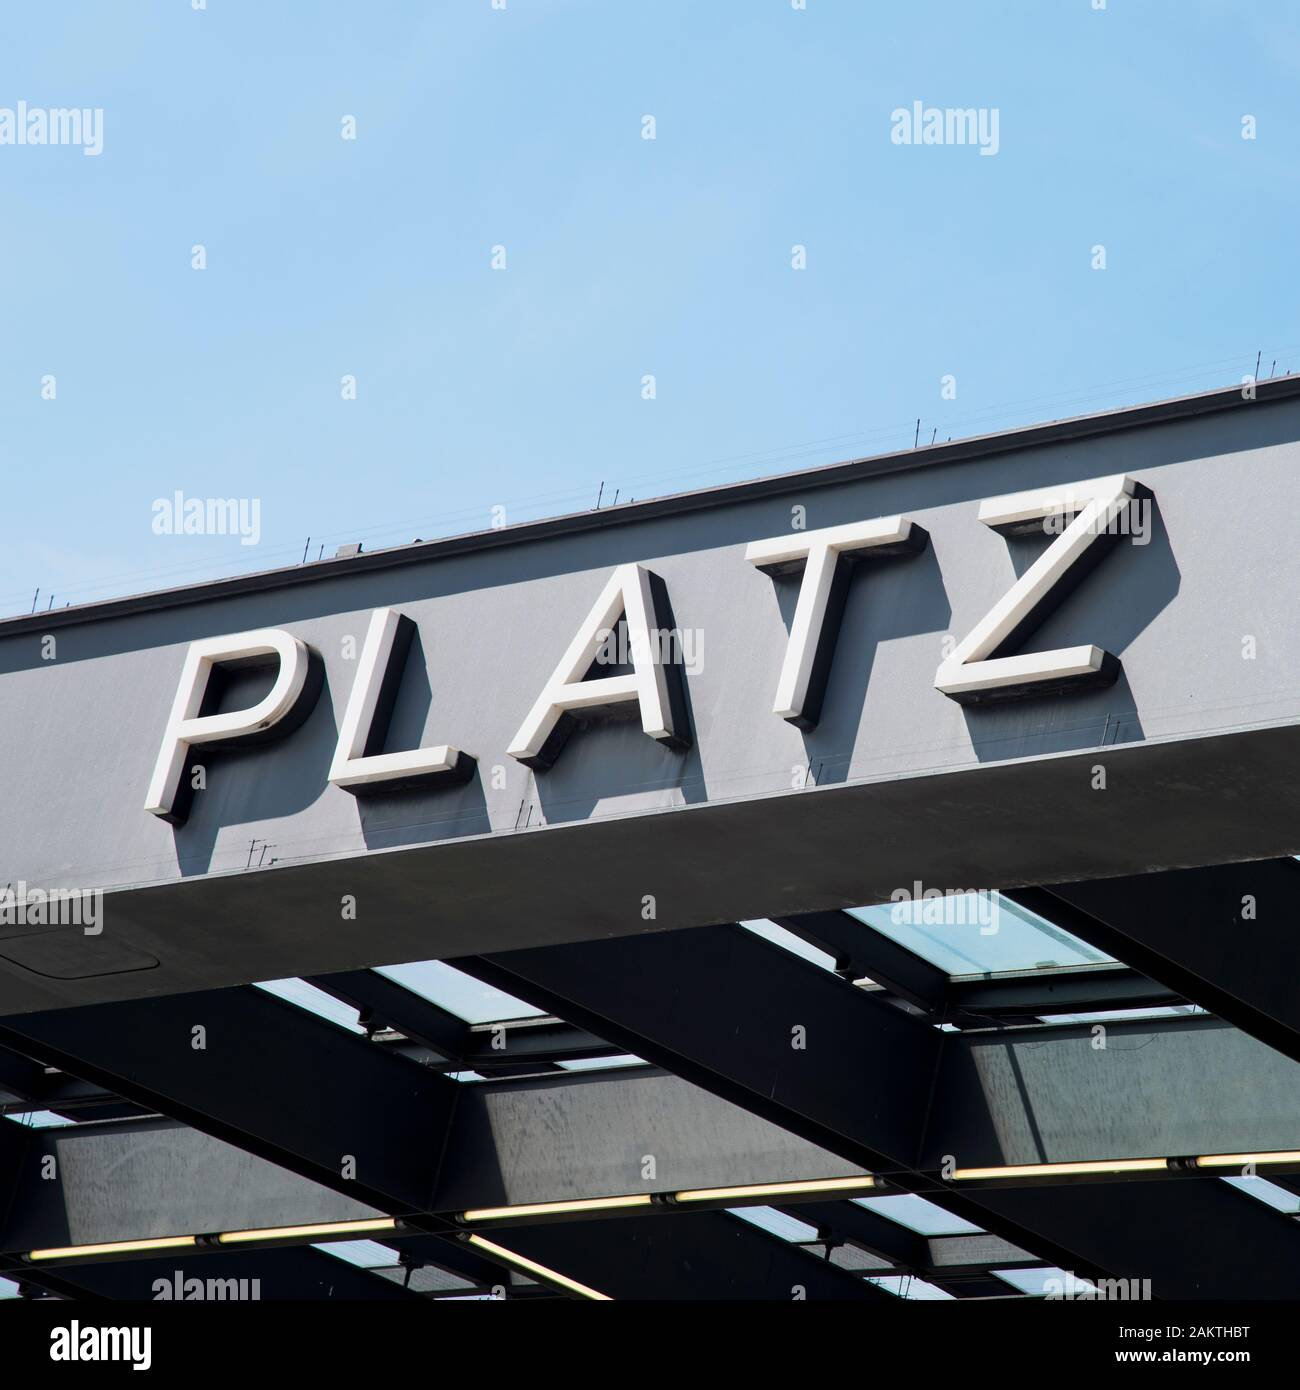 Deutsche Küche Potsdamer Platz S Bahnhof Potsdamer Platz High Resolution Stock Photography And Images - Alamy